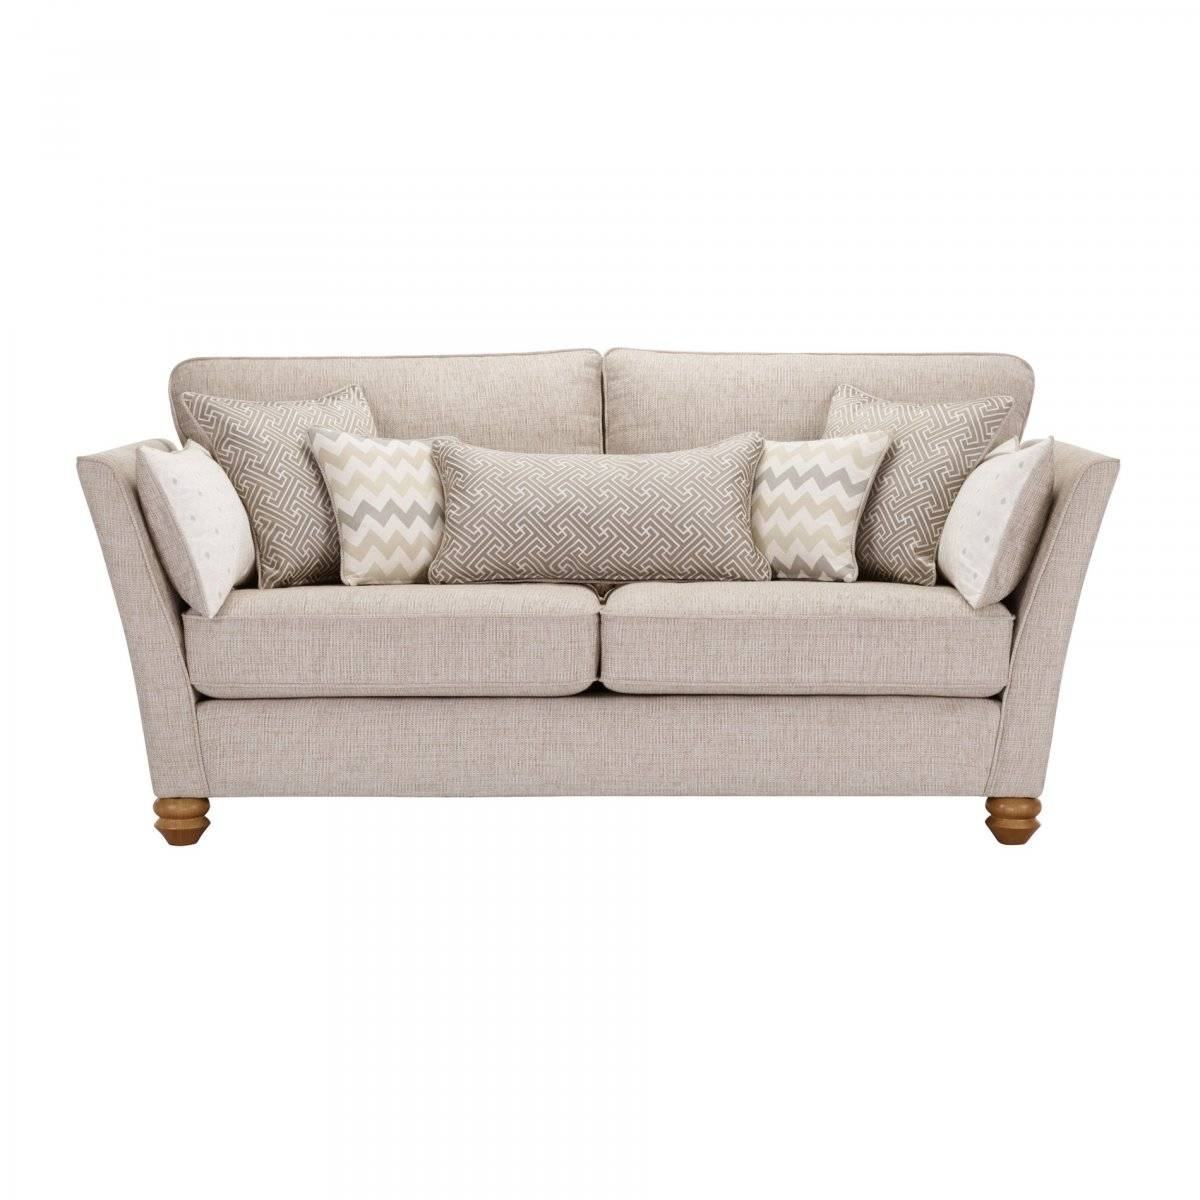 Gainsborough 3 Seater Sofa In Beige | Oak Furniture Land inside Large 4 Seater Sofas (Image 9 of 30)